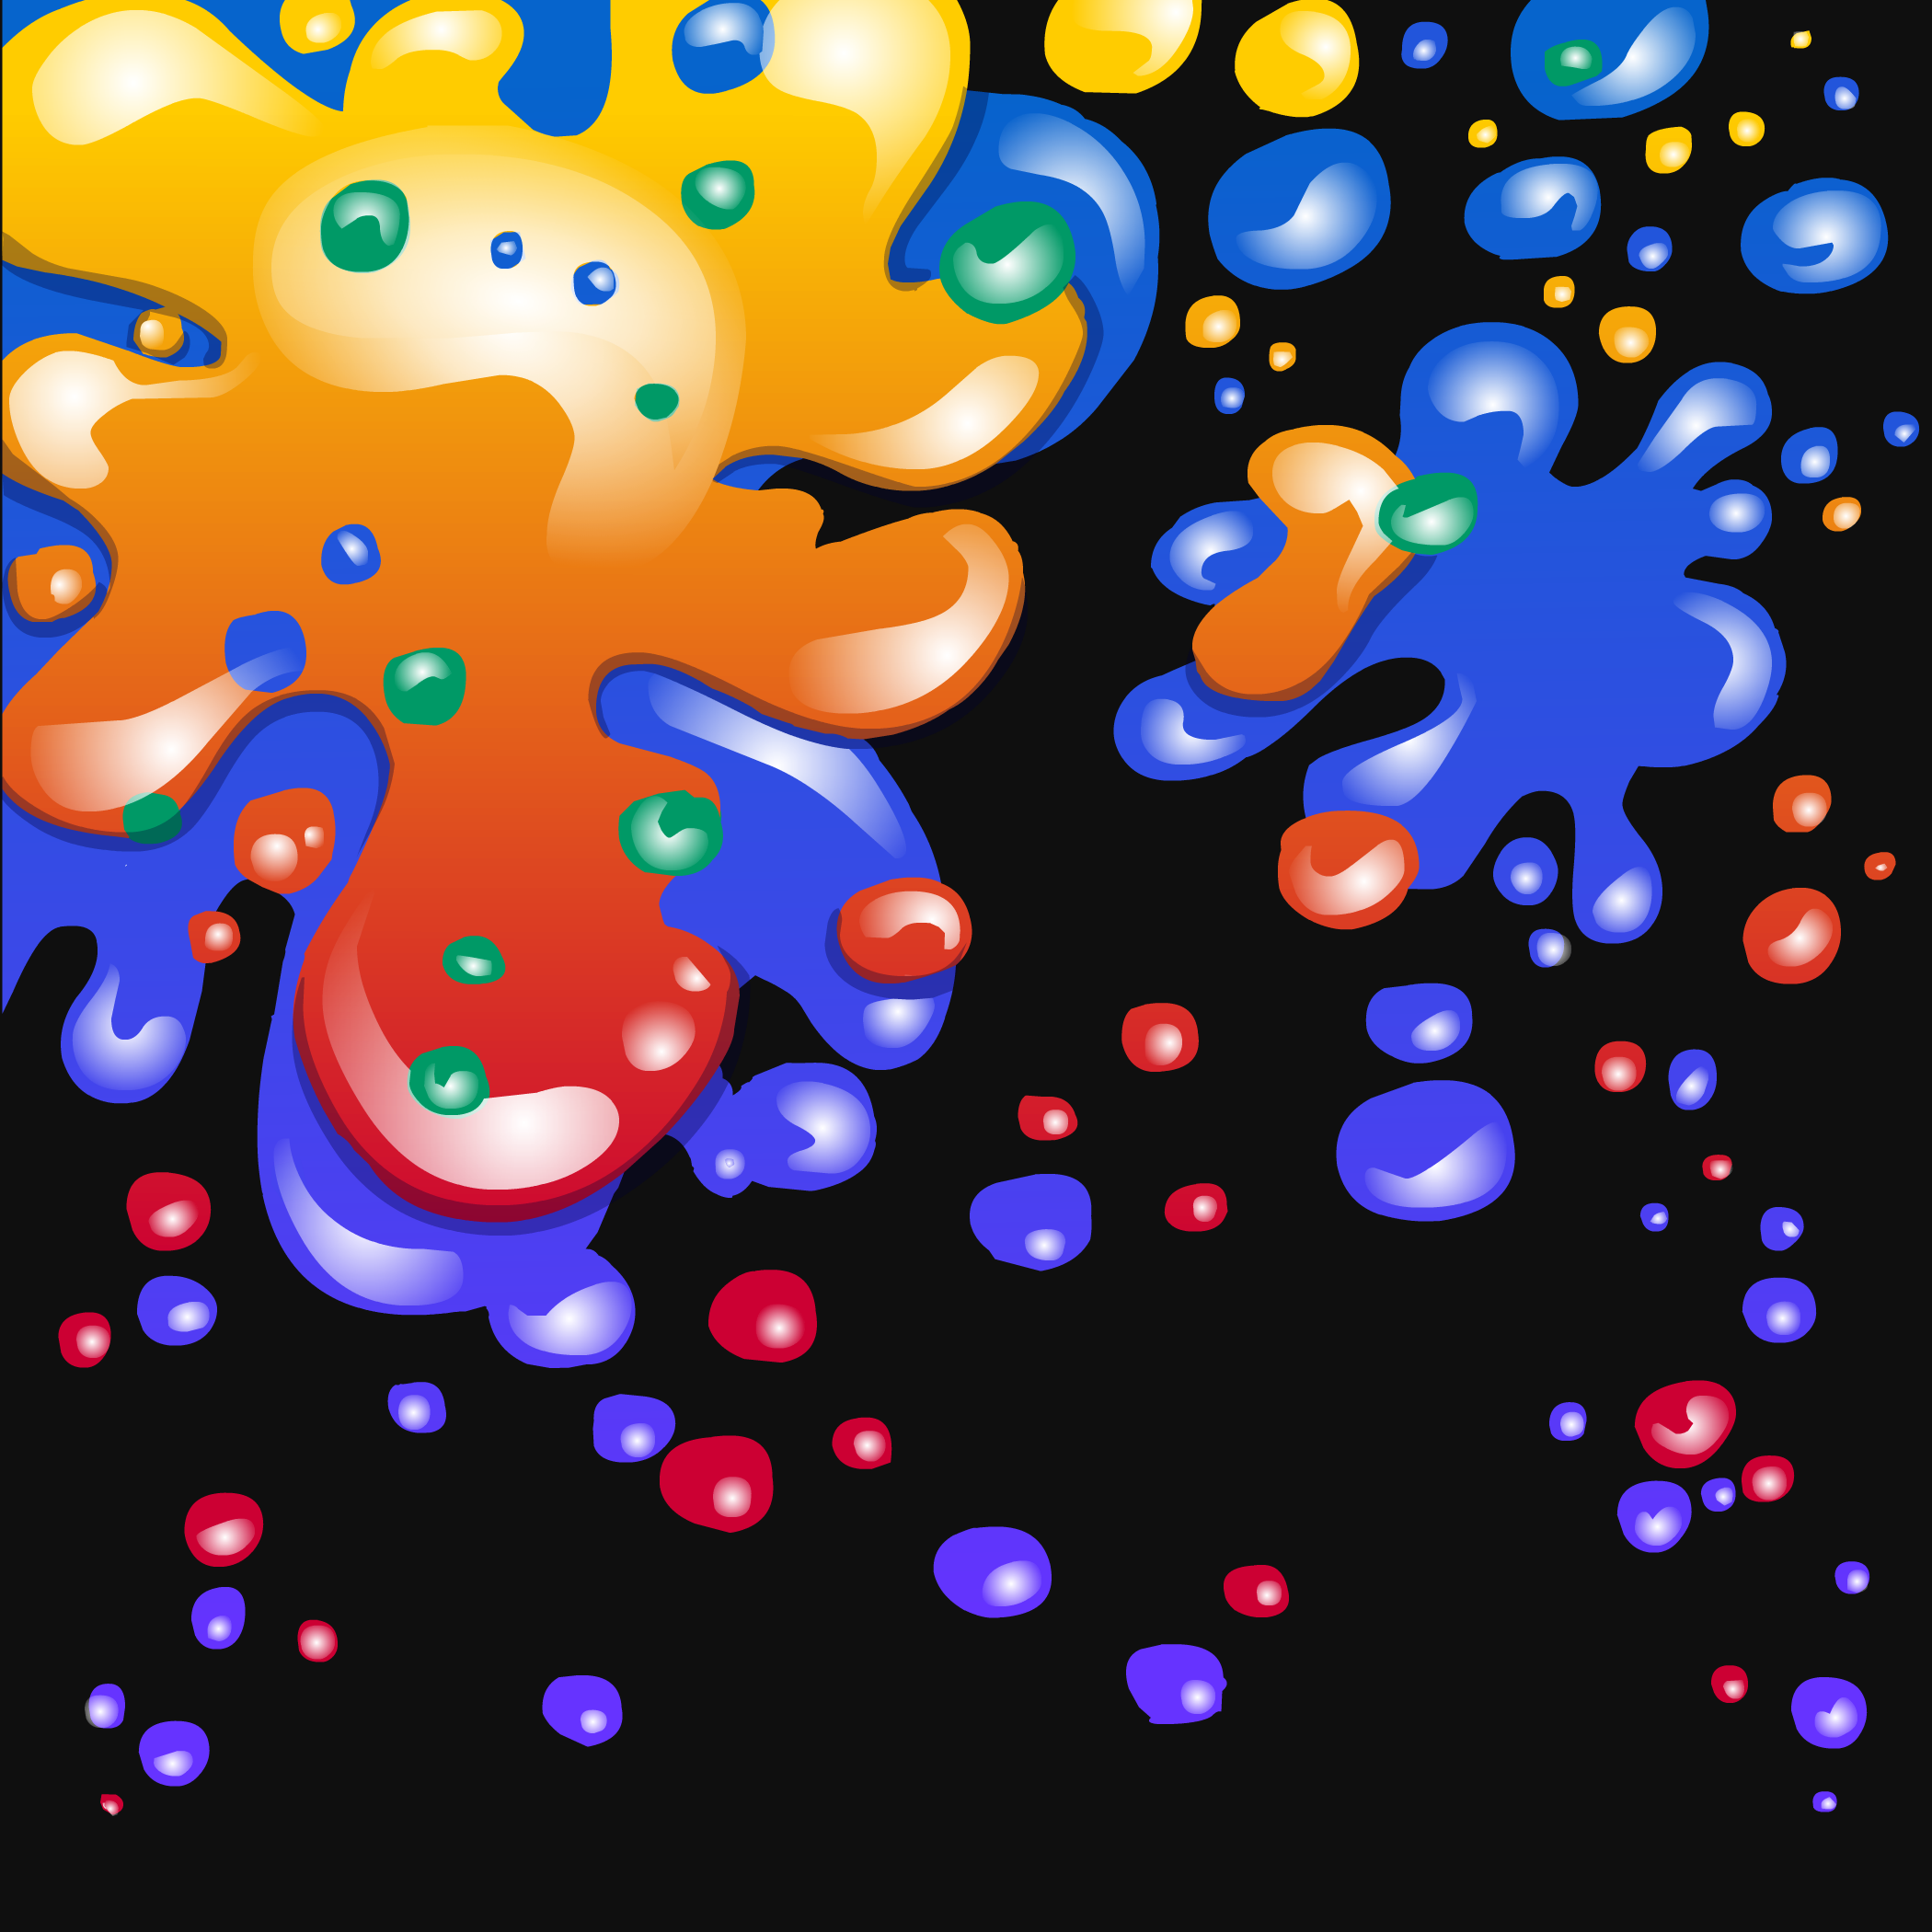 Paint Splatter Background - Club Penguin Wiki - The free ...